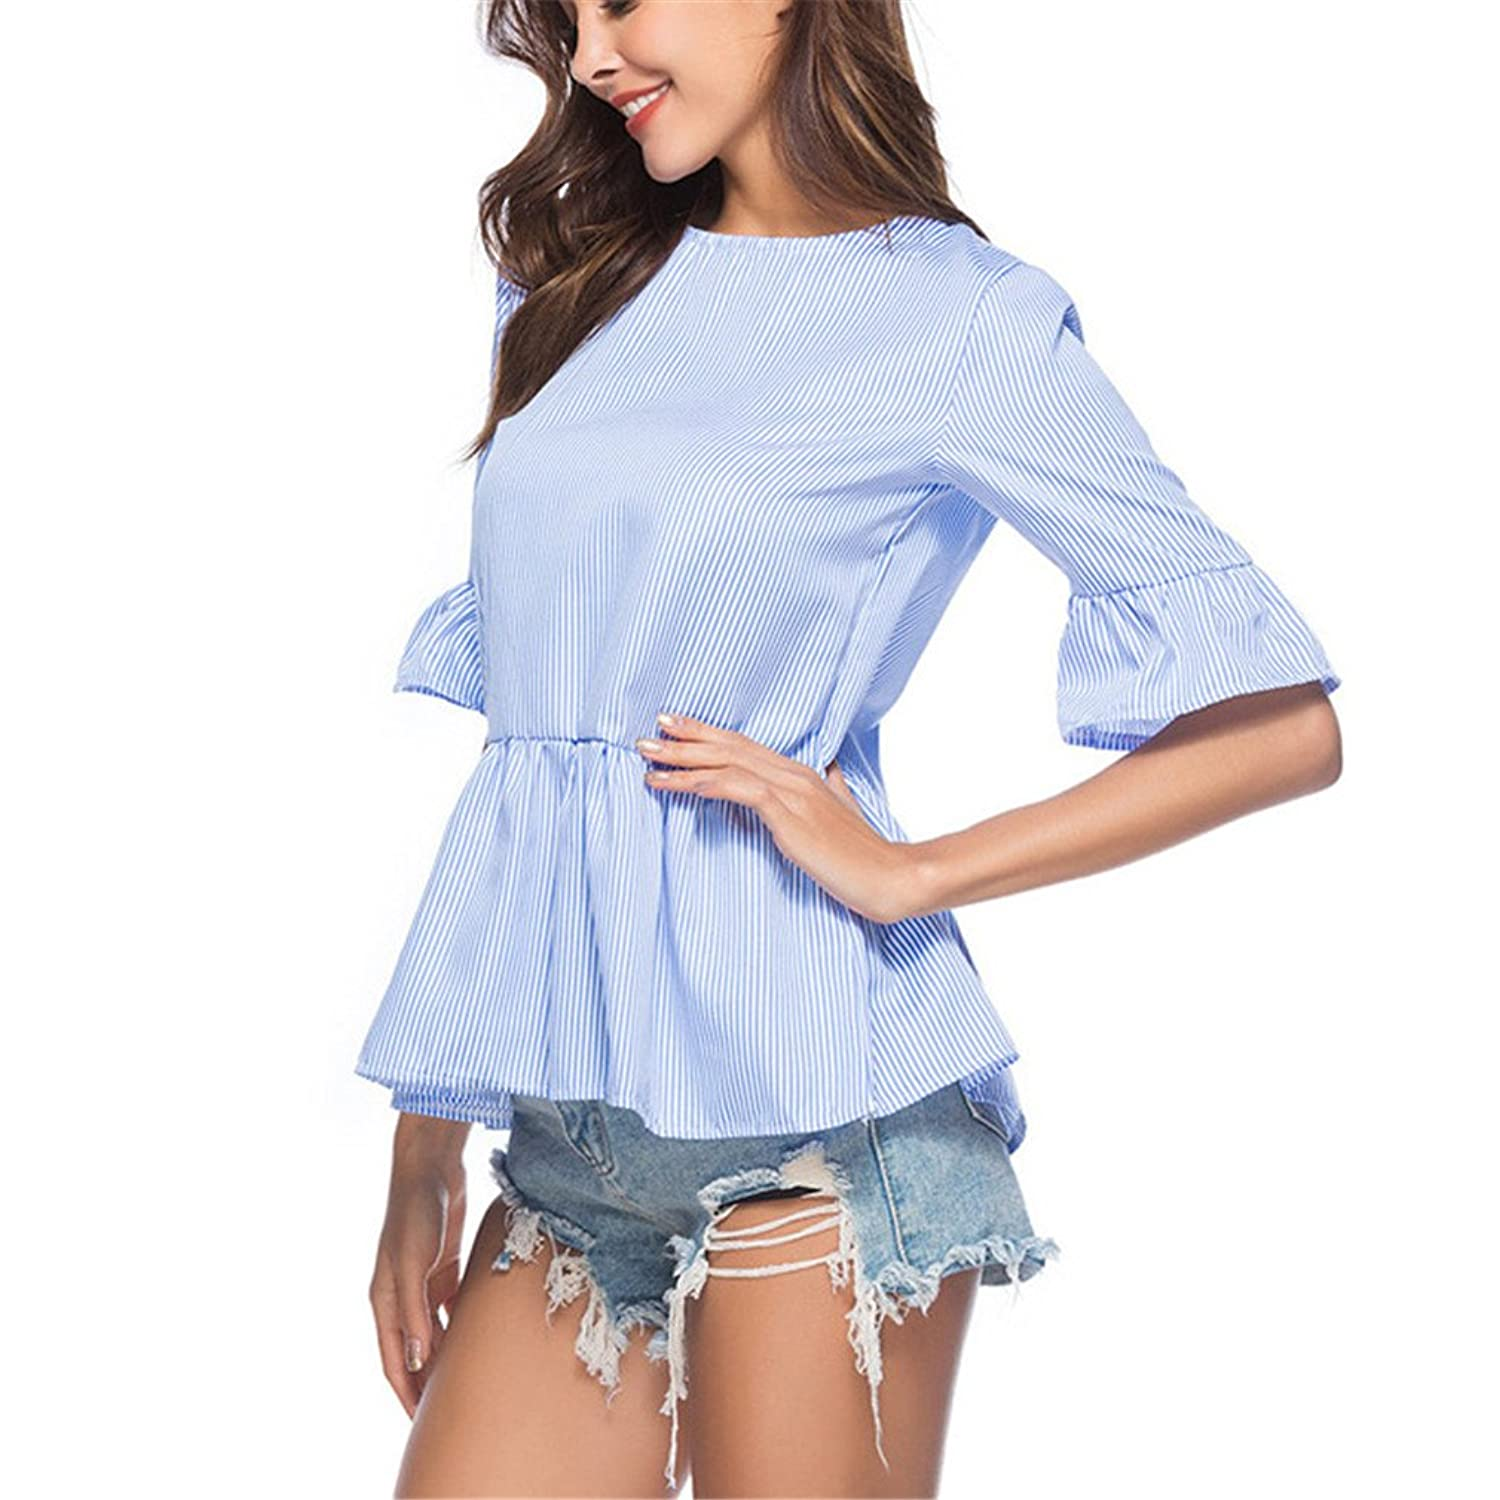 BBBai Women Summer Blue and White Striped Blouse Ruffle Half Sleeve Casual Womens Blouses at Amazon Womens Clothing store: